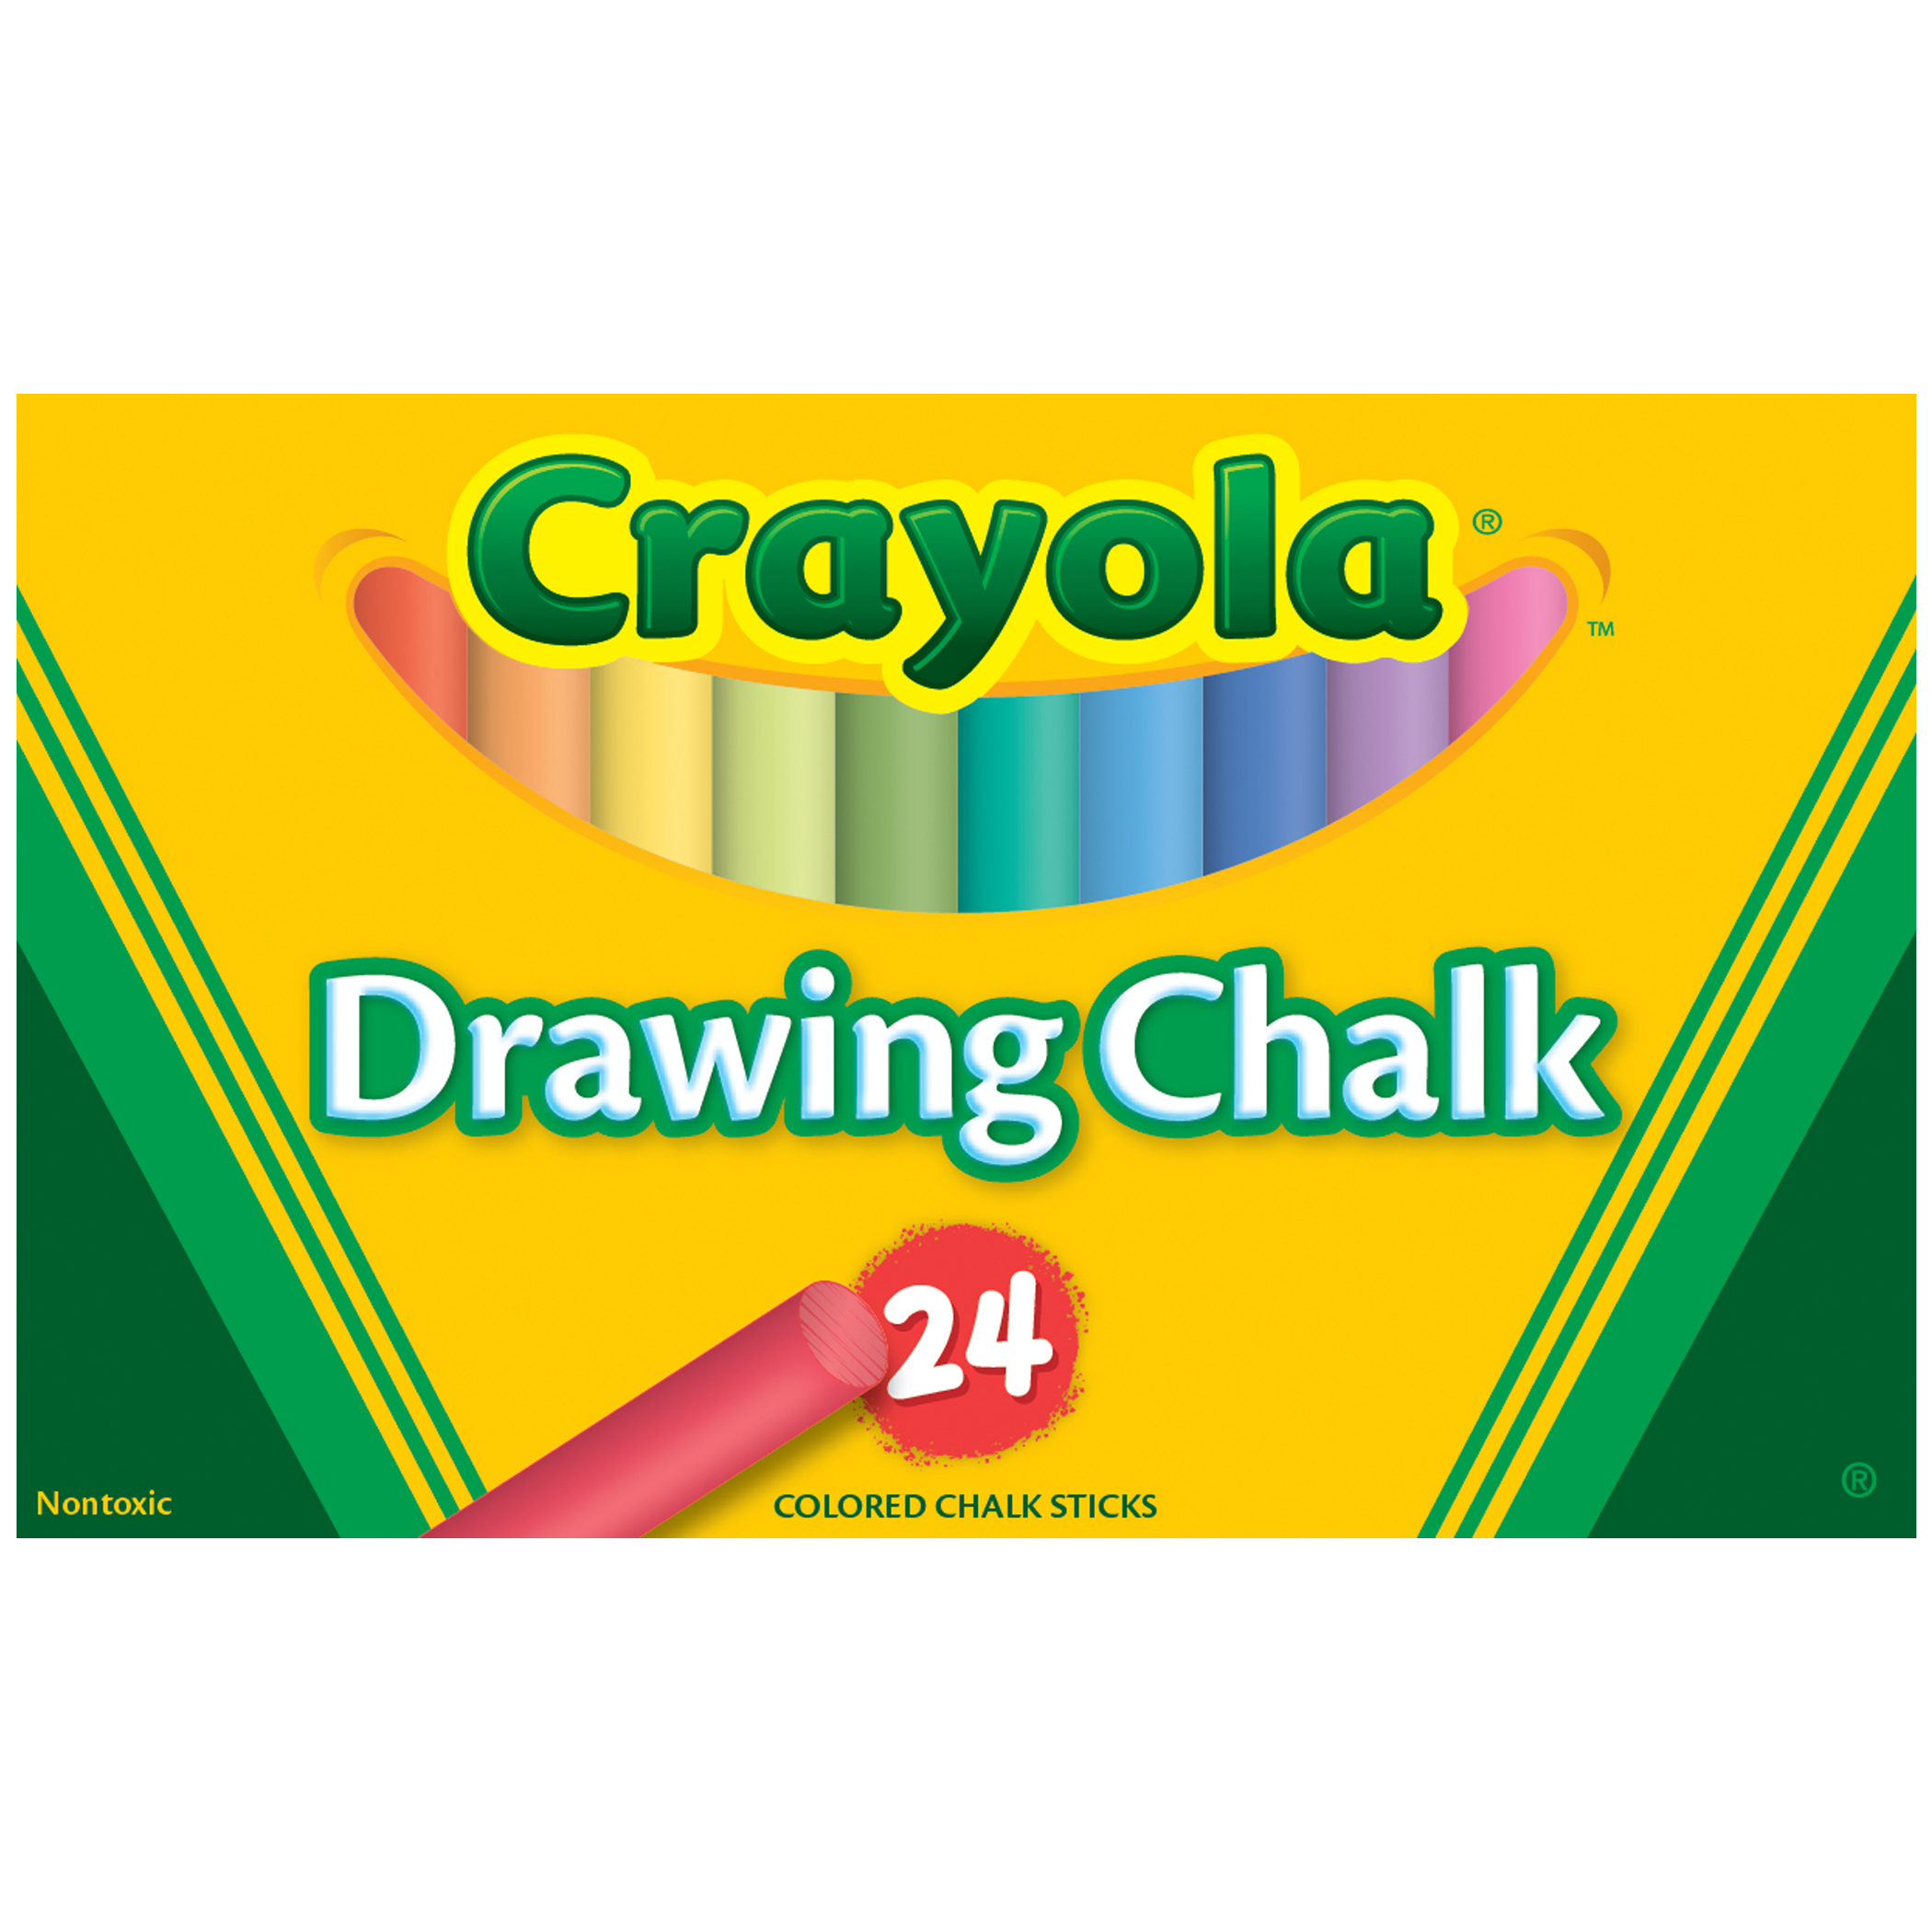 Crayola® Colored Drawing Chalk, 24 colors per box, Set of 6 boxes